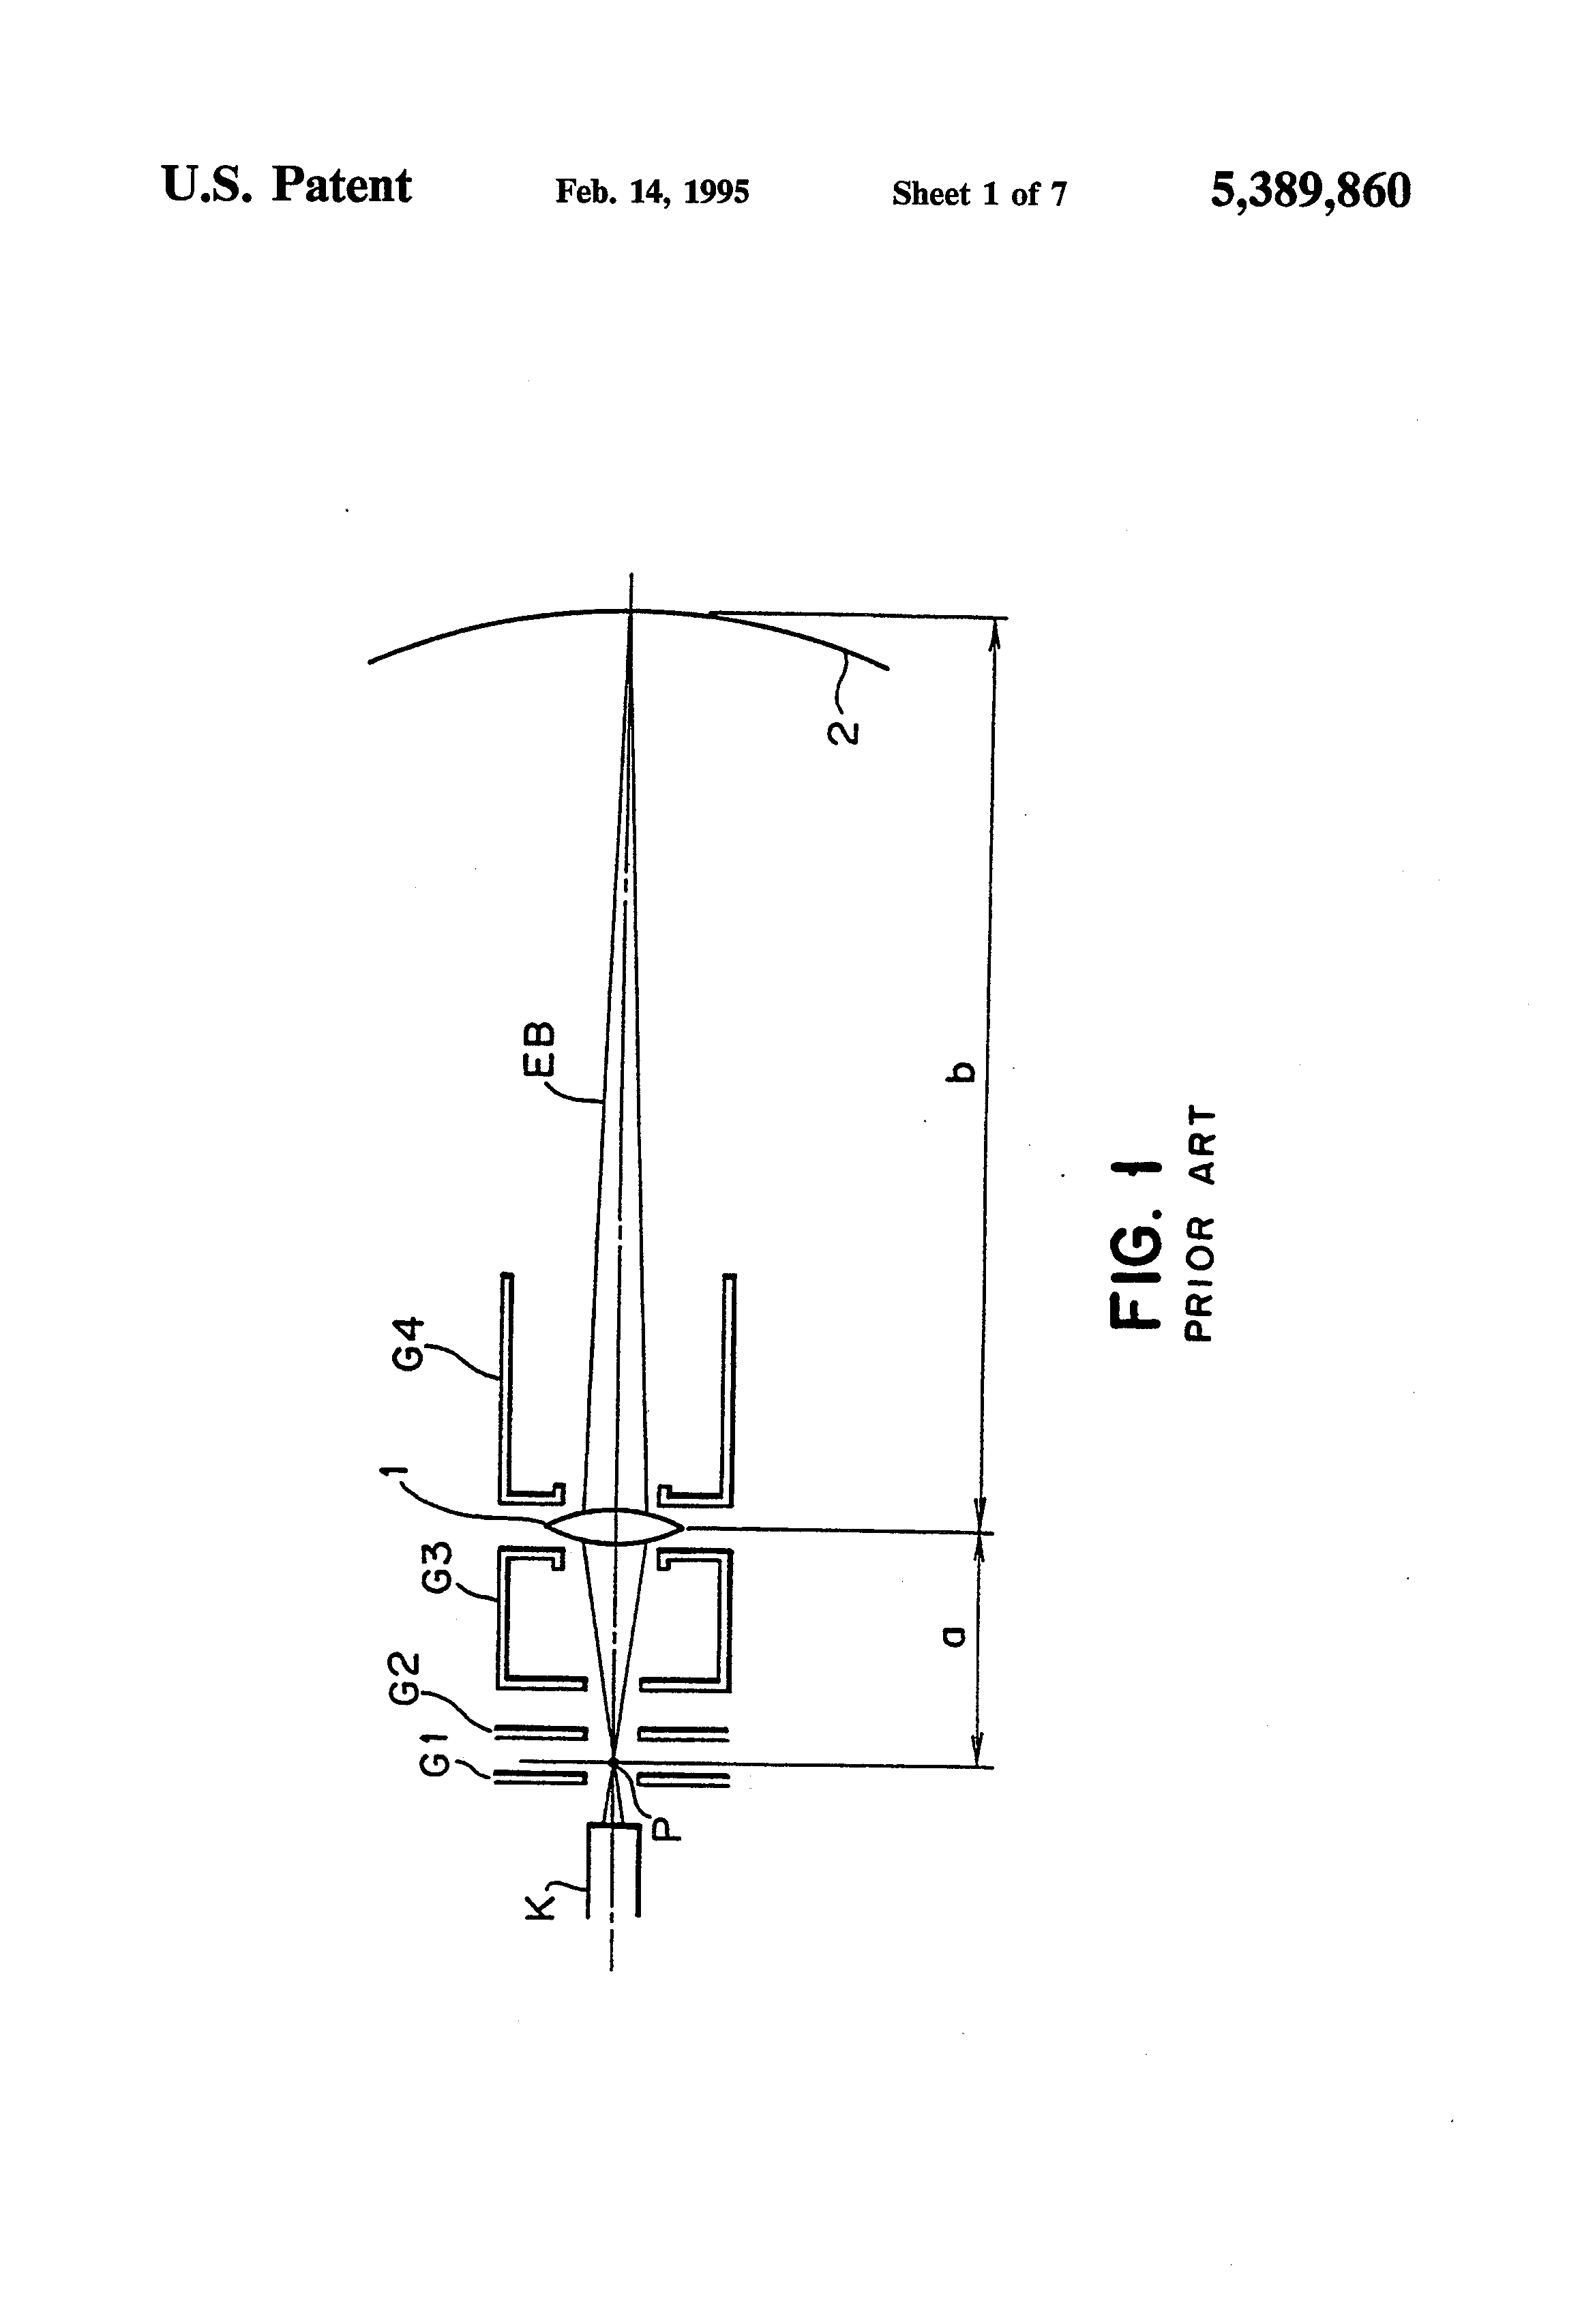 Patent Us5389860 Focus Control Circuit For Crt Google Patents Screen Schematic Drawing